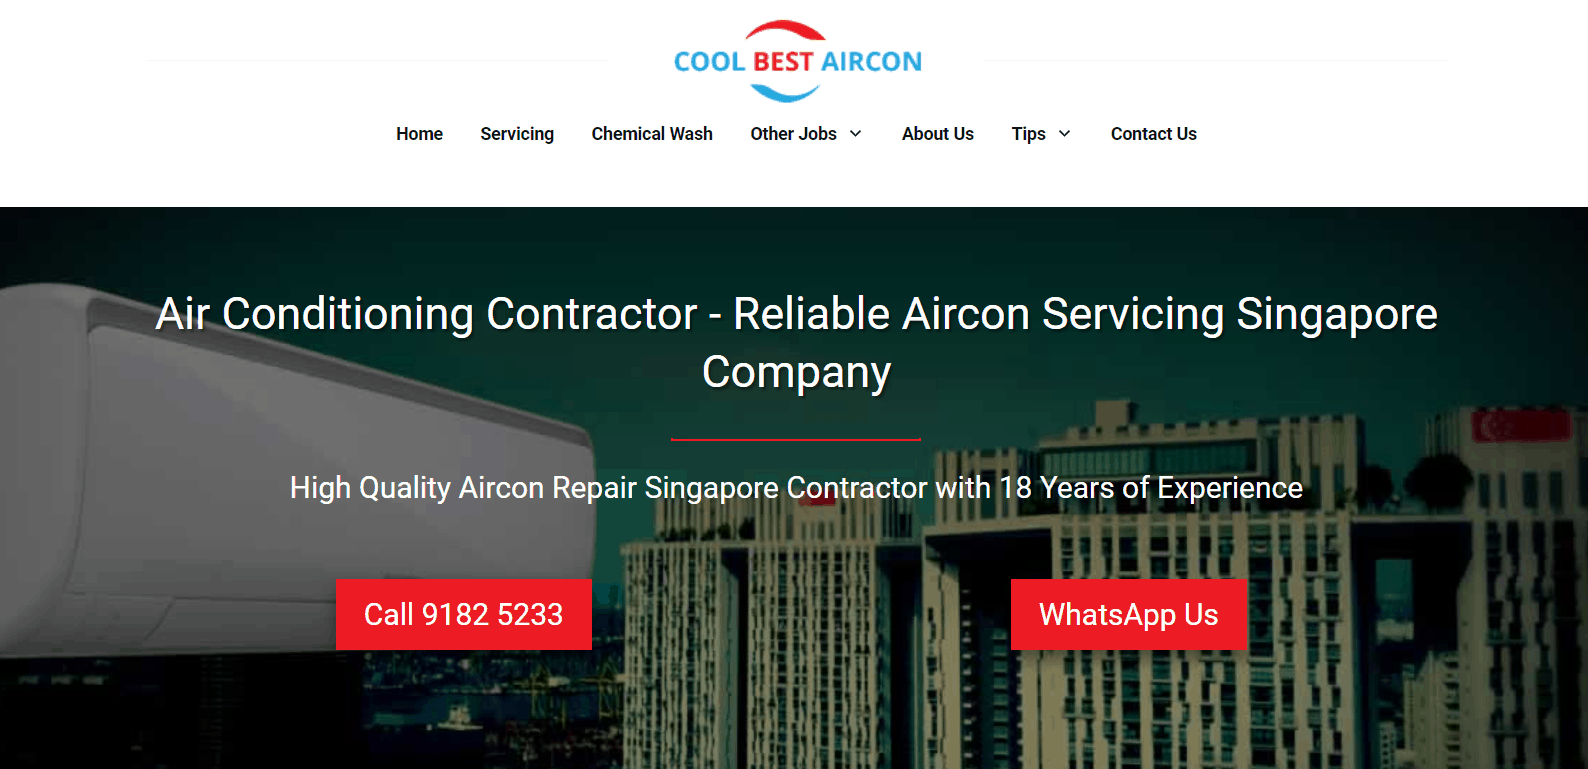 Coolbest Aircon Servicing Aircon Servicing Price & Promotion - Best Service Package